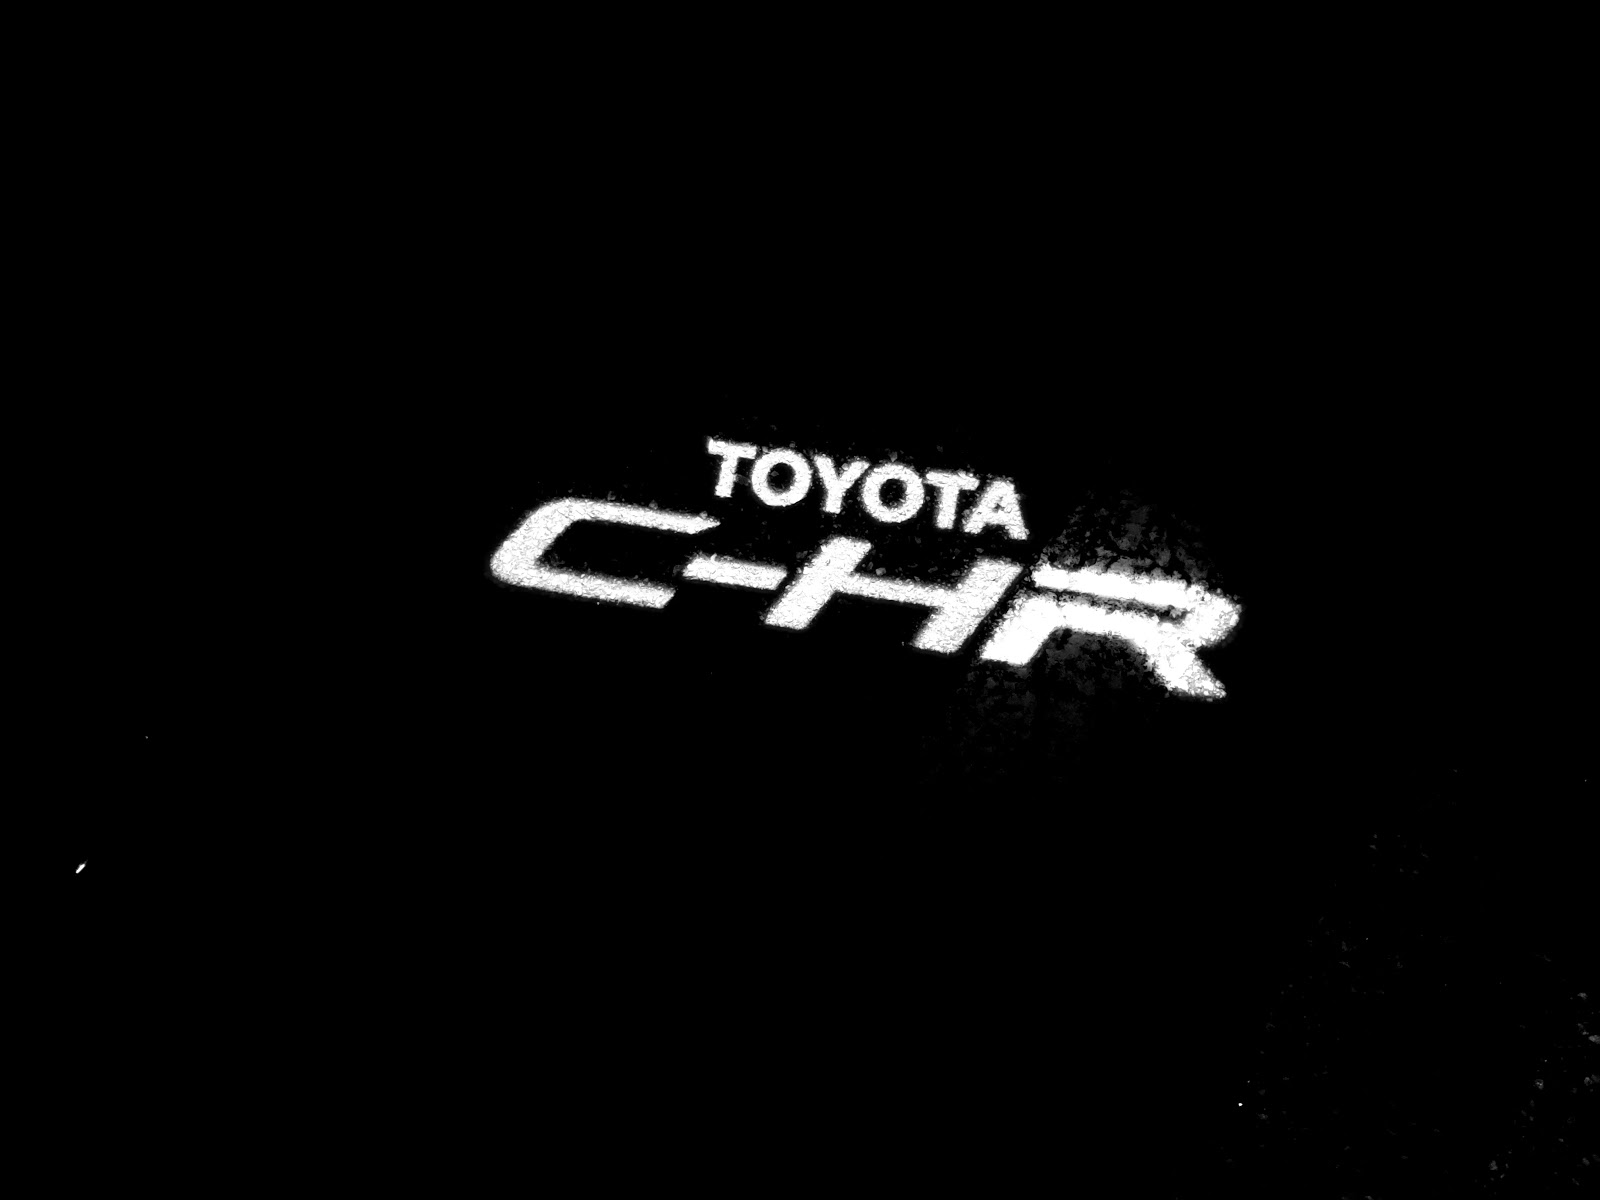 2020 Toyota C-HR Light Logo on the Ground